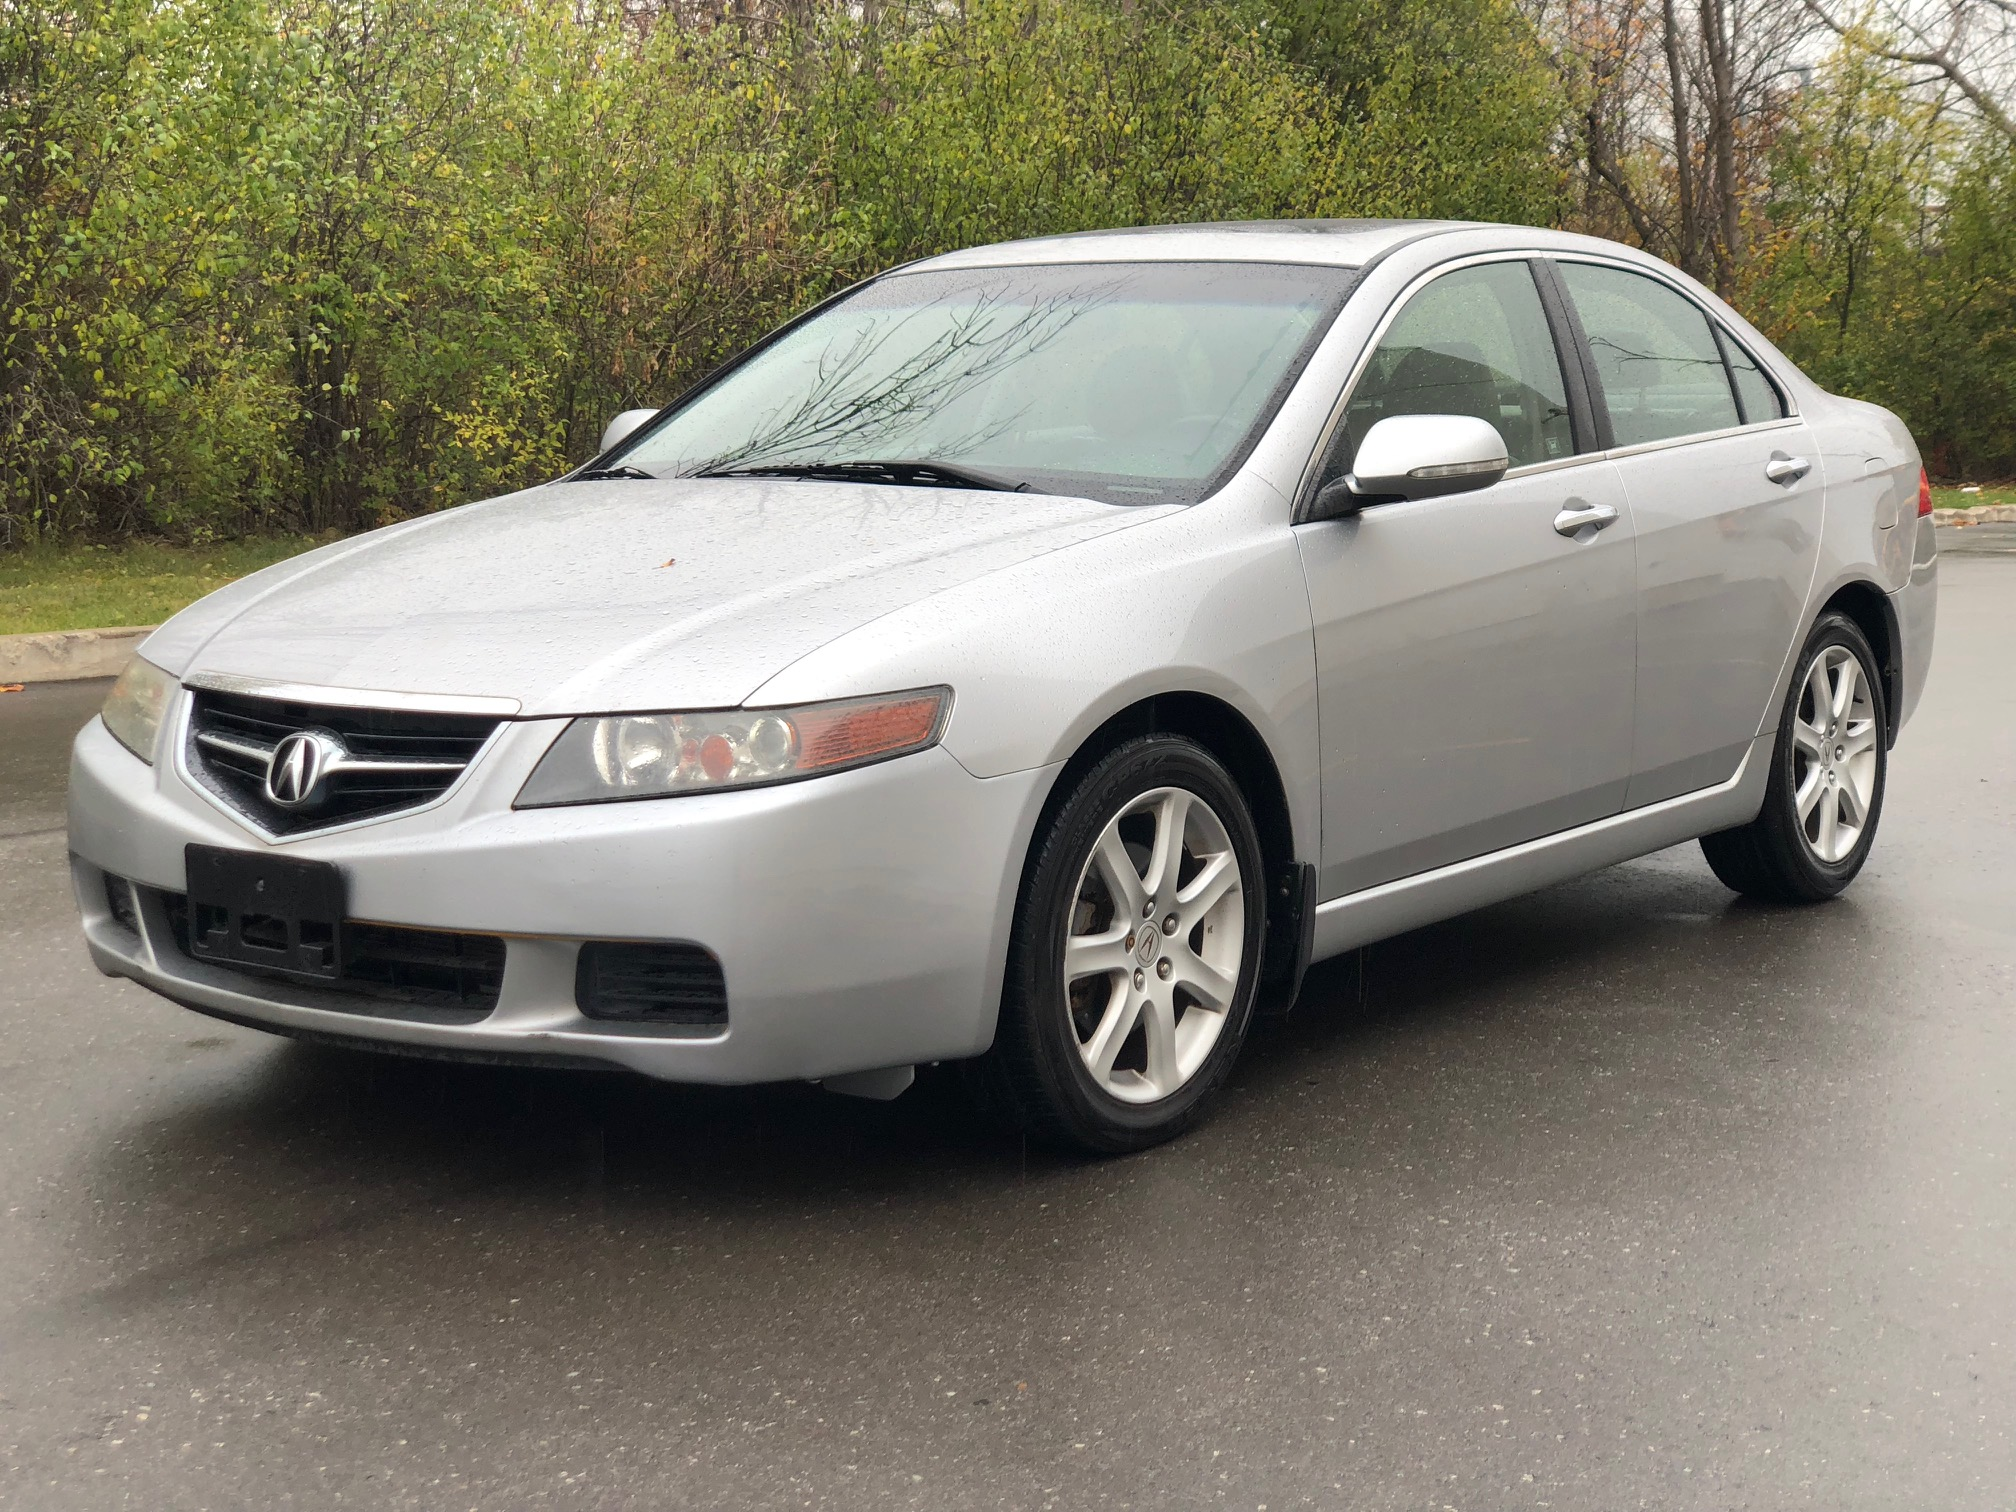 Acura-TSX-Premium-Certified-4-Cyl-Sedan